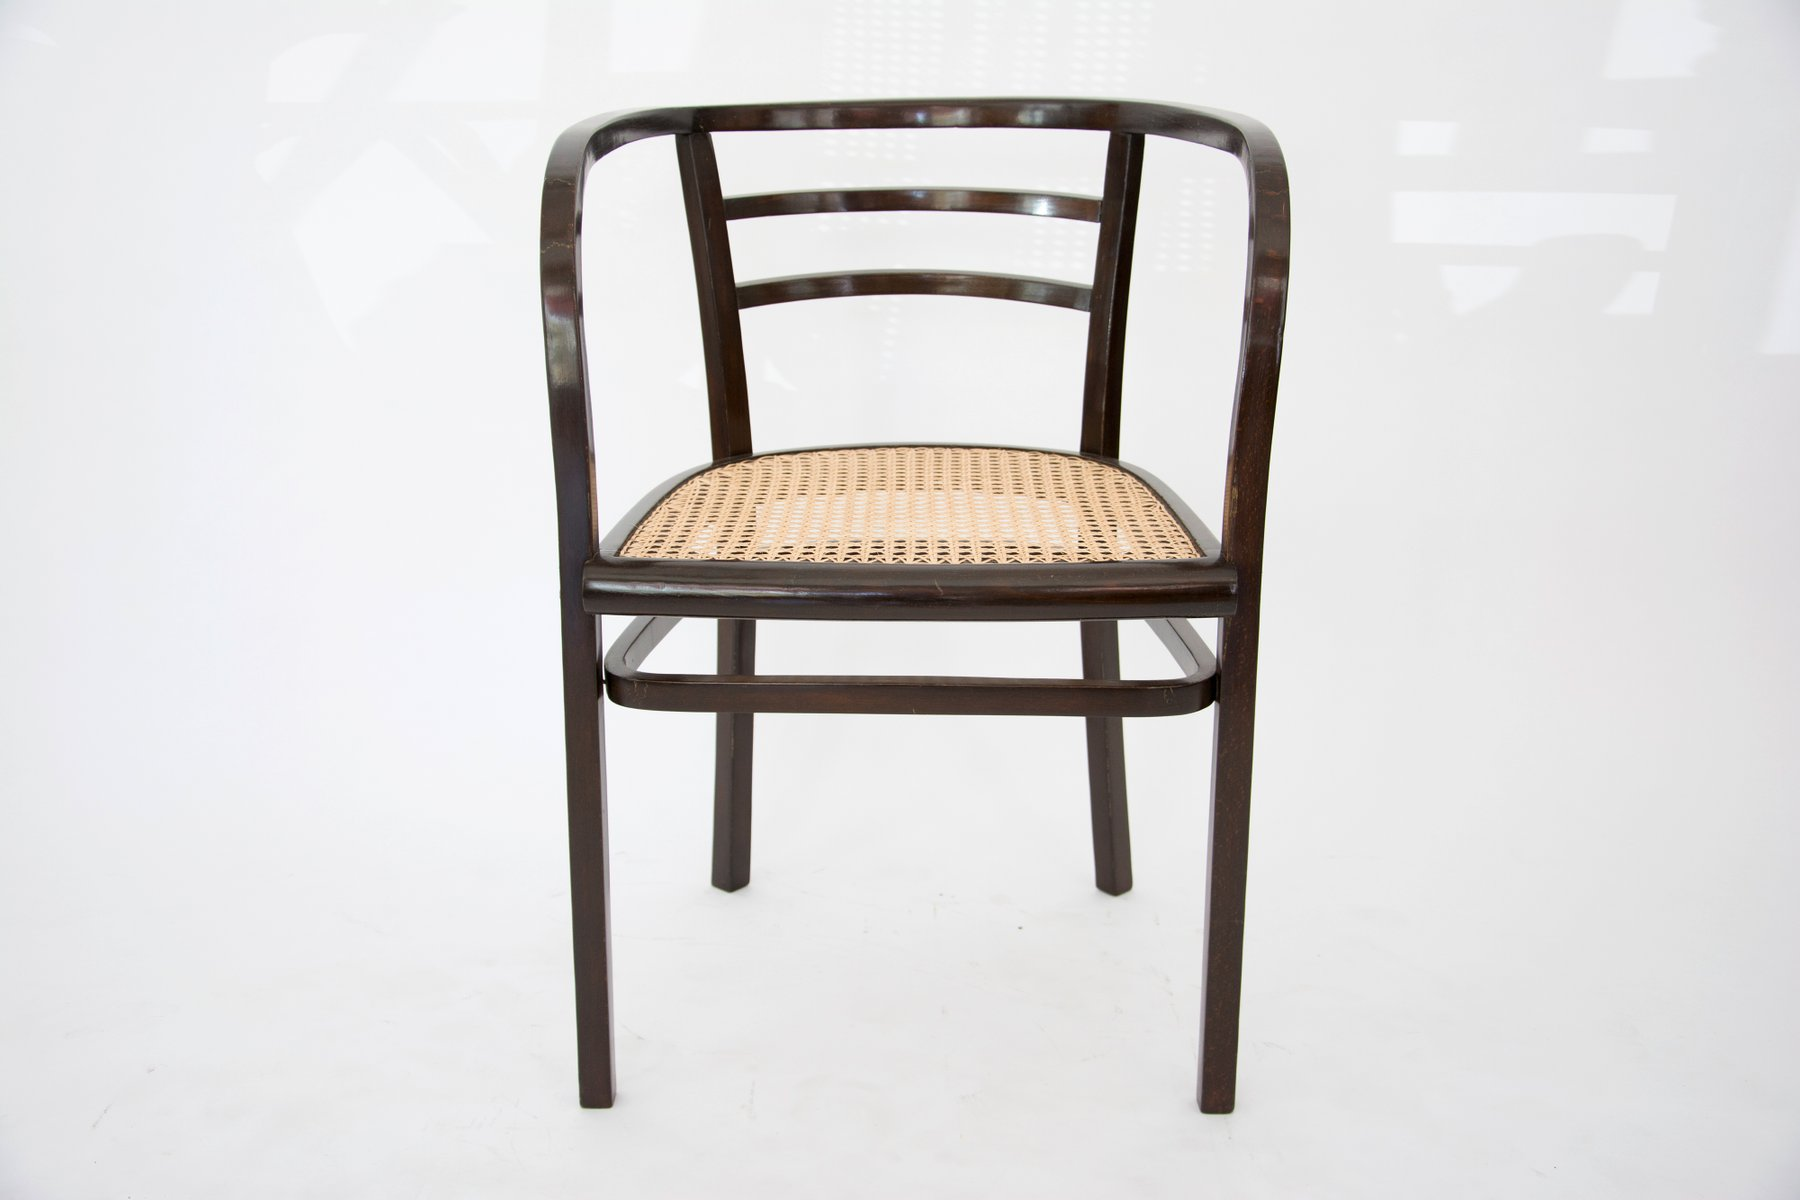 Armchair By Otto Wagner For Thonet 1905 For Sale At Pamono